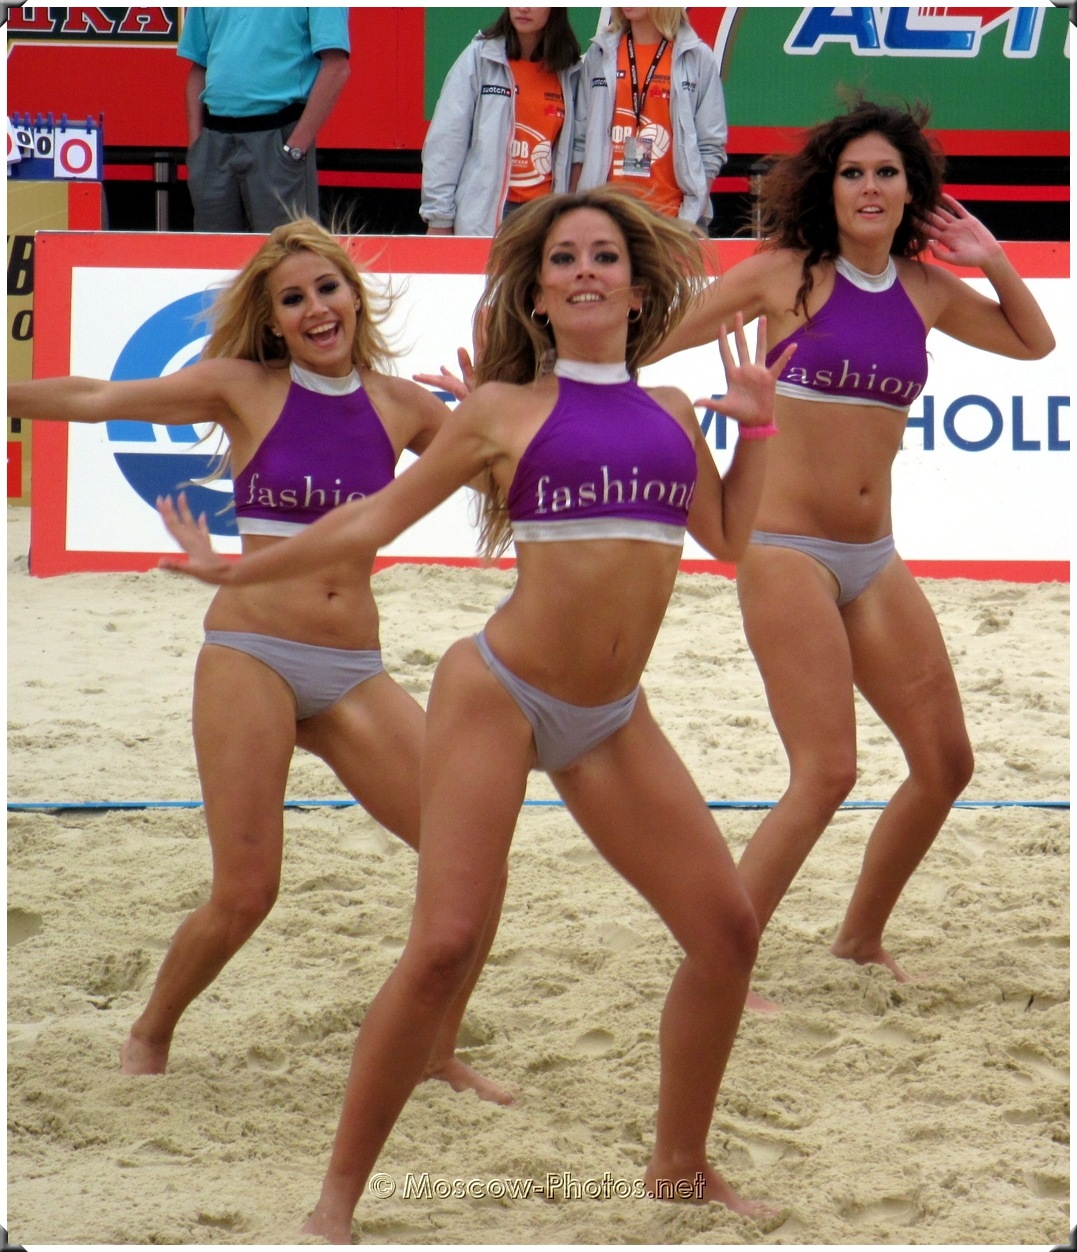 Beach Volleyball Dancing Fashion TV Girls